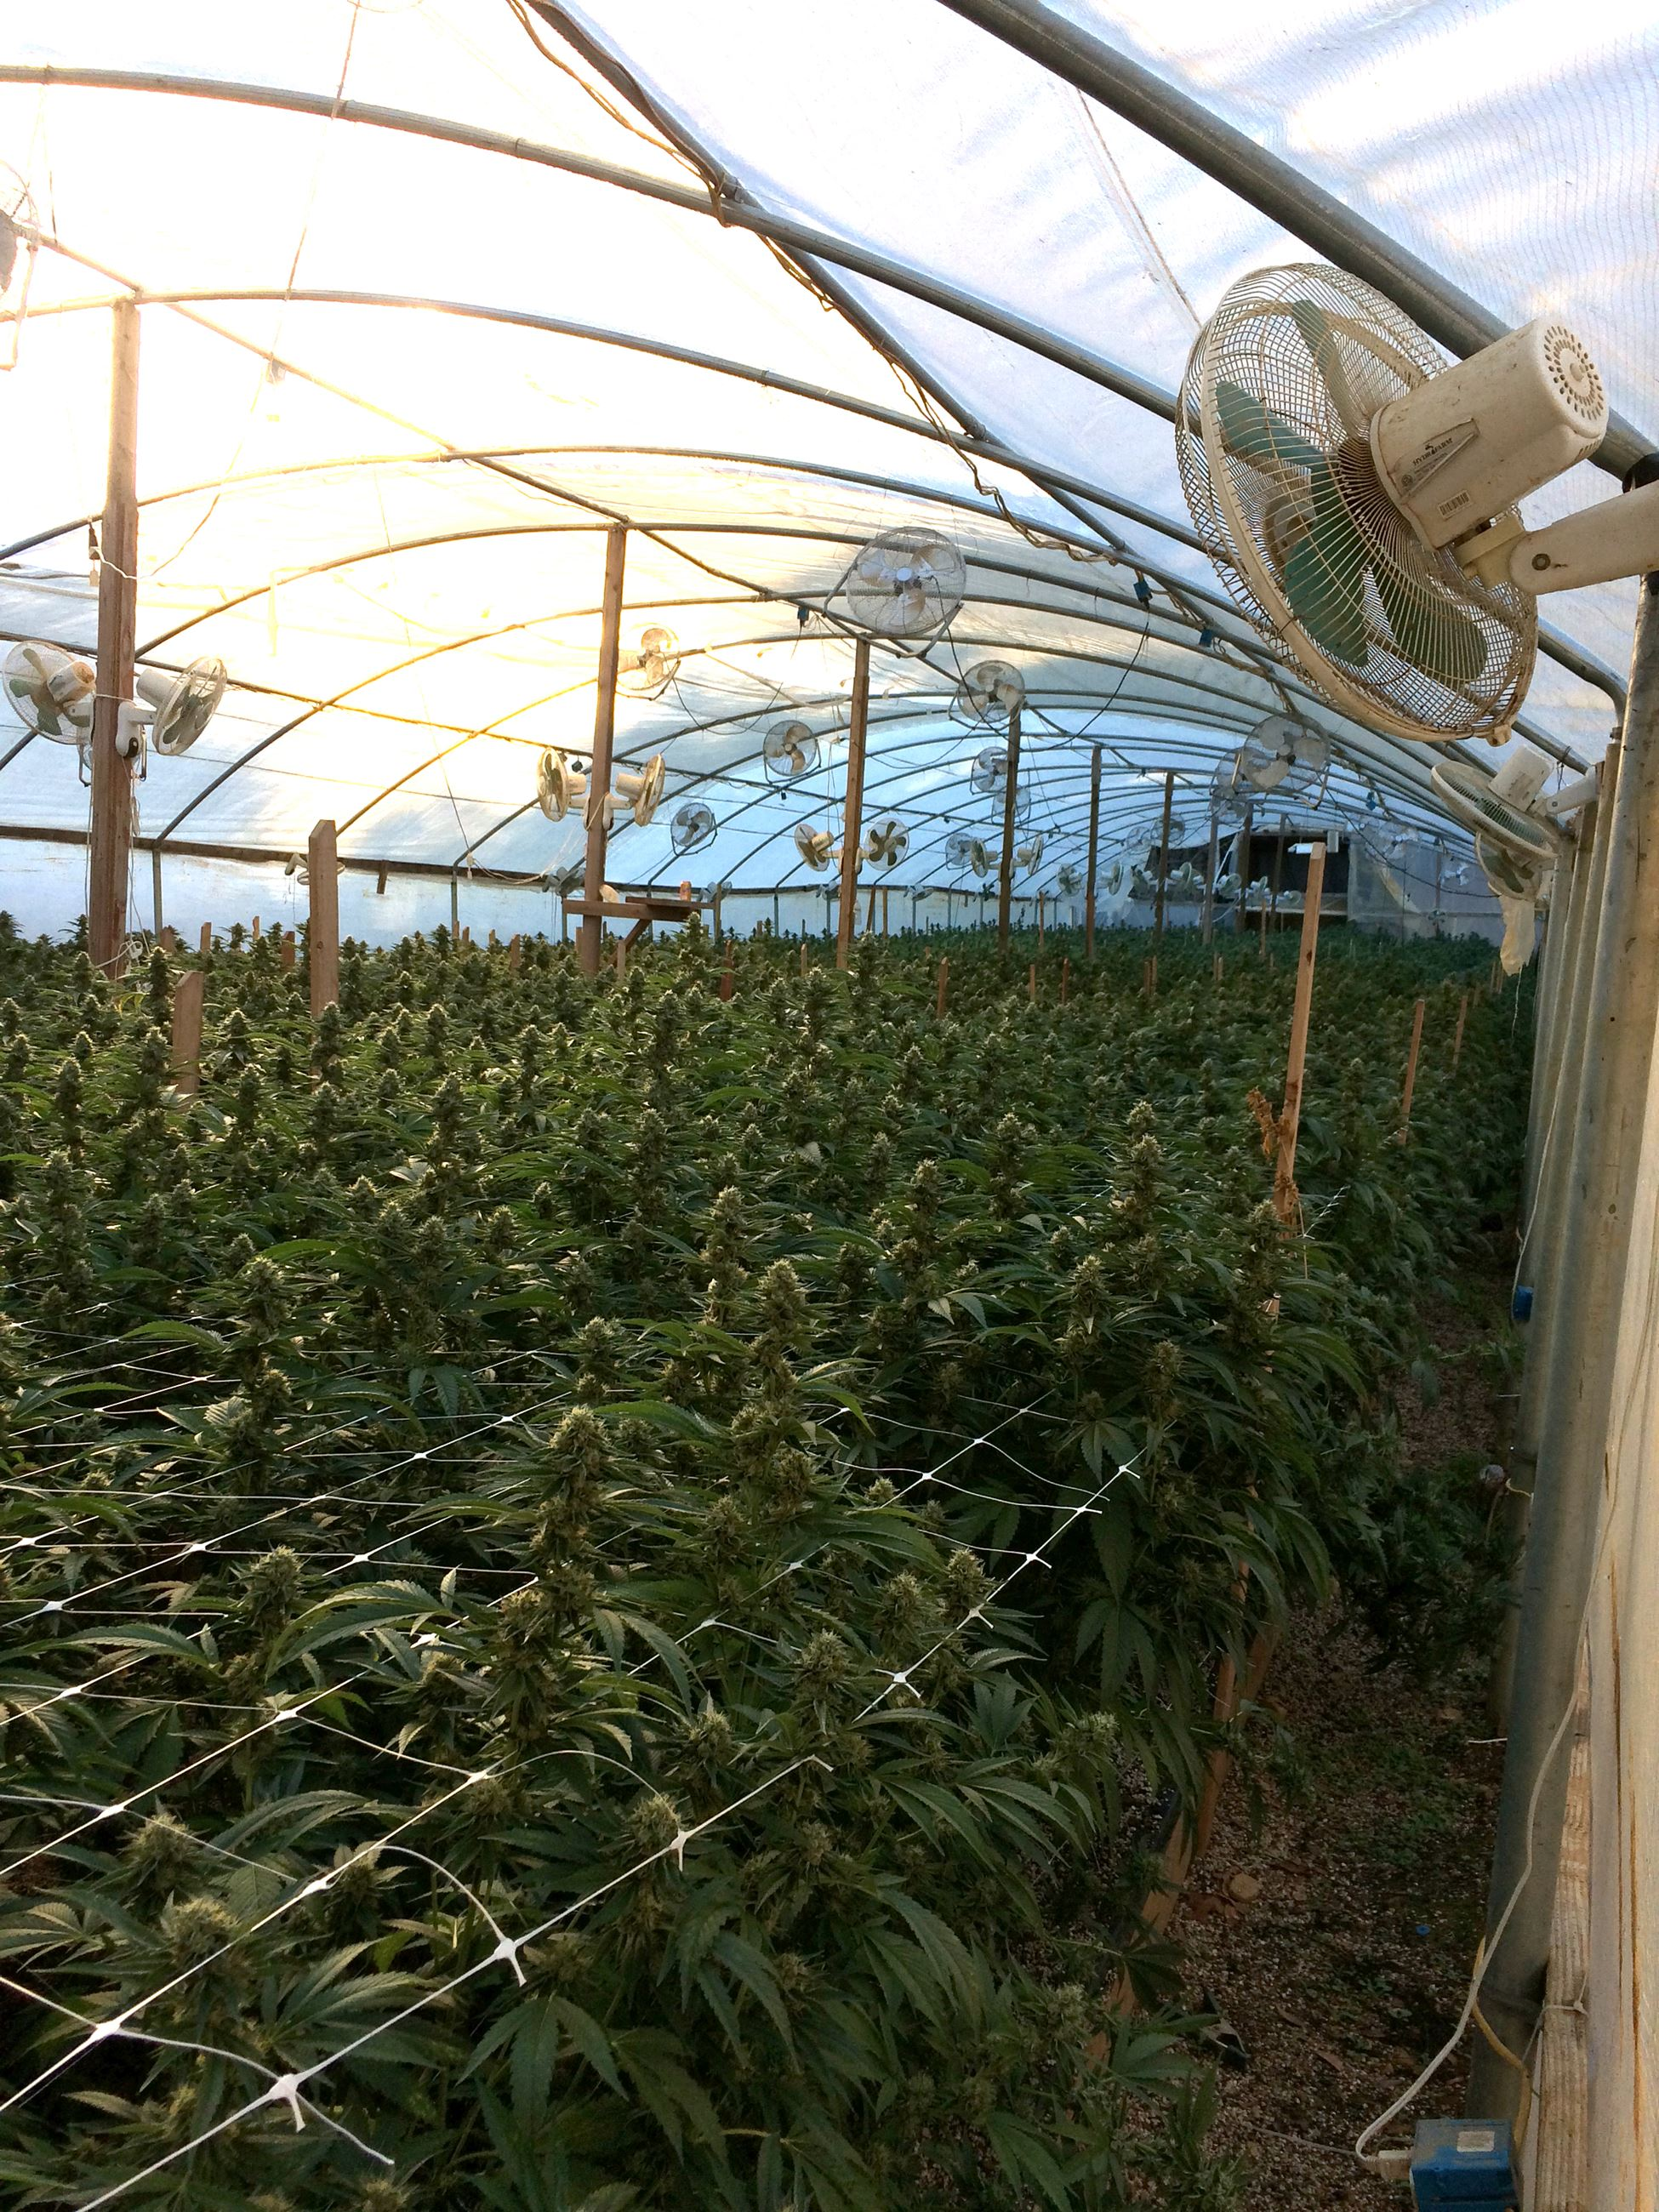 Marijuana growing inside a green house found at the Rancho Sequoia search warrant.